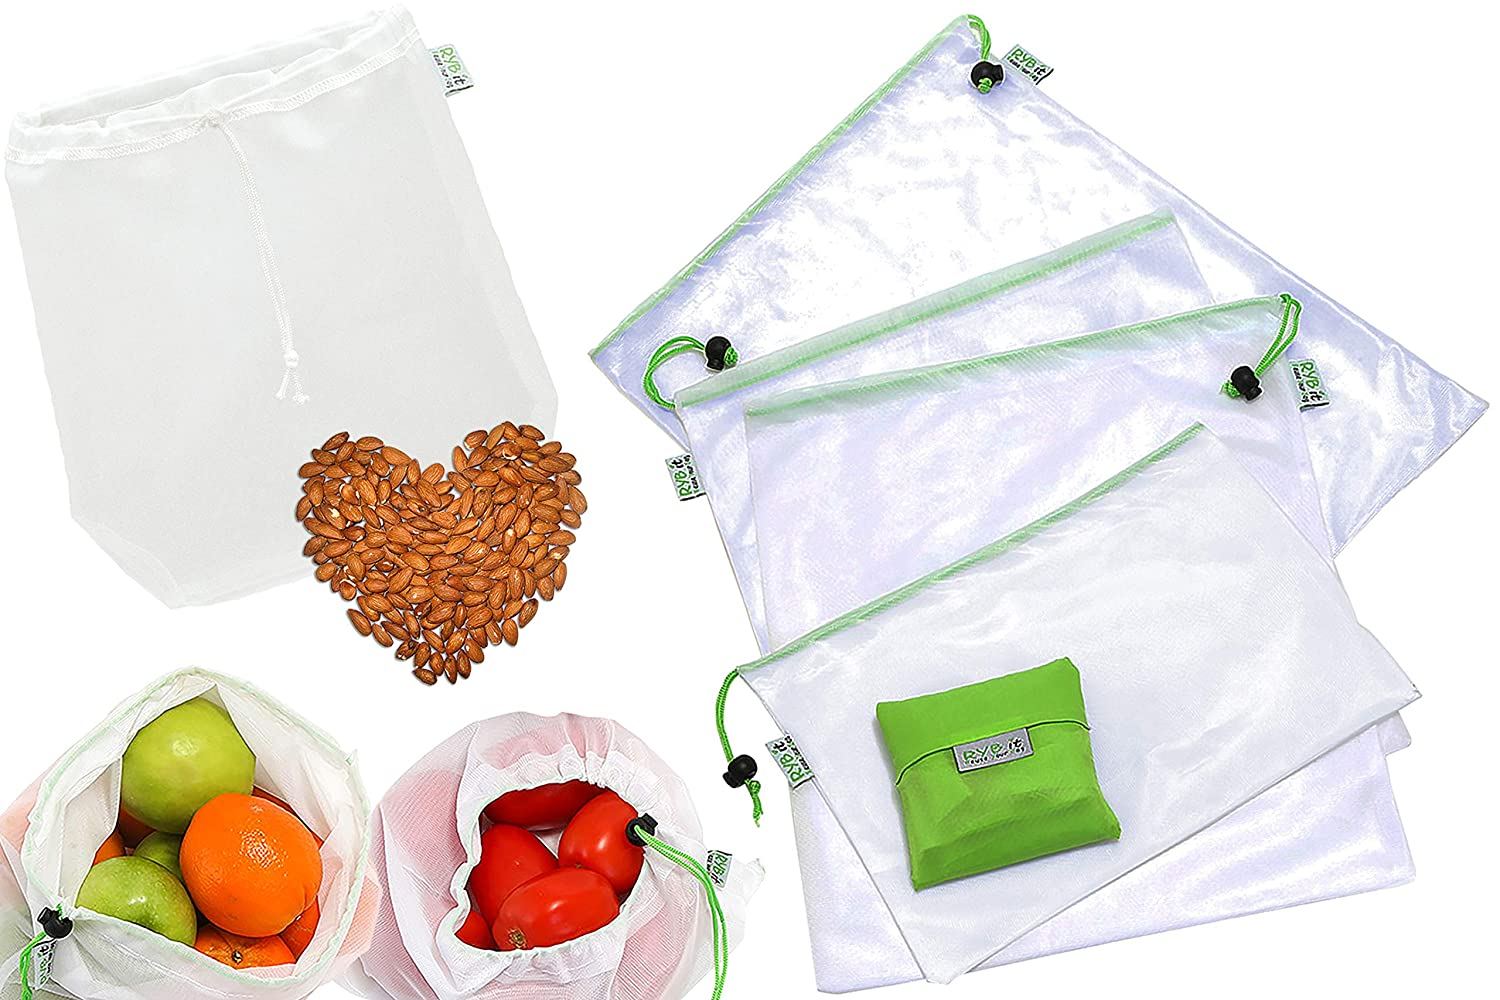 RYBit Reusable Mesh/Produce Bags Set of 9, 1 Nutmilk Bag, 1 Bonus Shopping Grocery Tote, Eco Friendly Bags Great for Storage of Produce Fruit/Vegetable, Washable